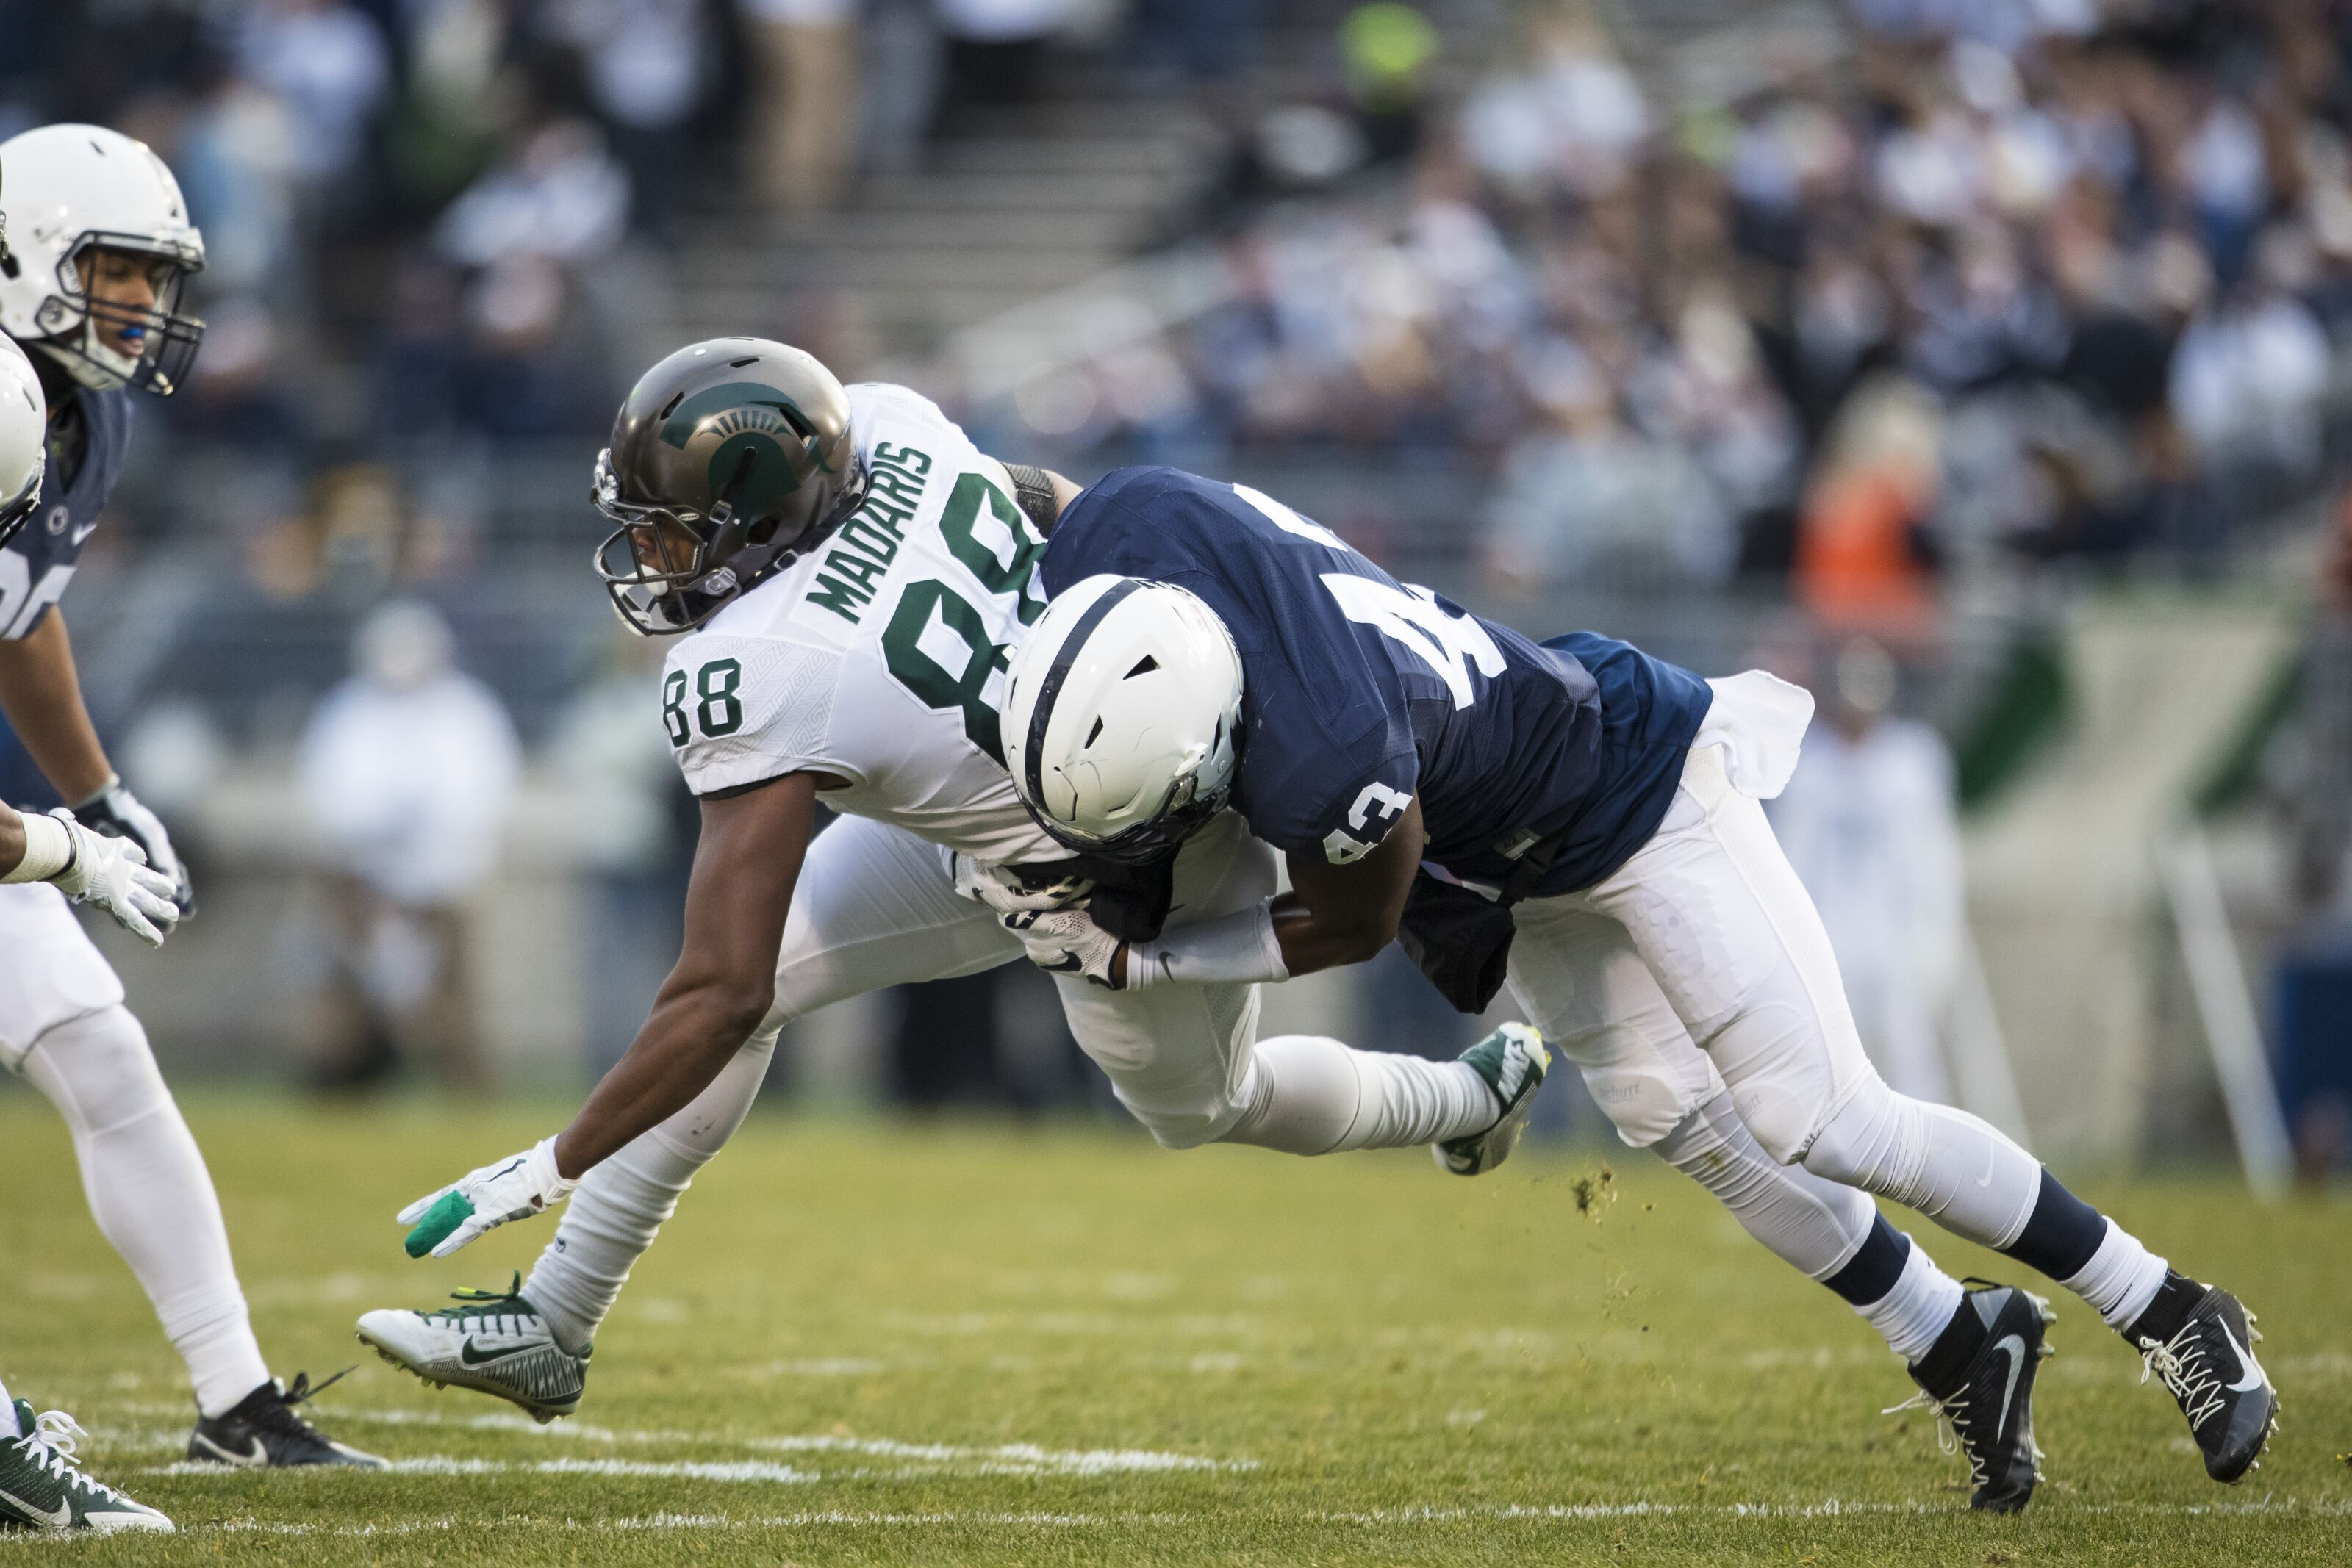 81a0d33a3f0 Penn State Football: Return of Manny Bowen gives needed boost to linebackers